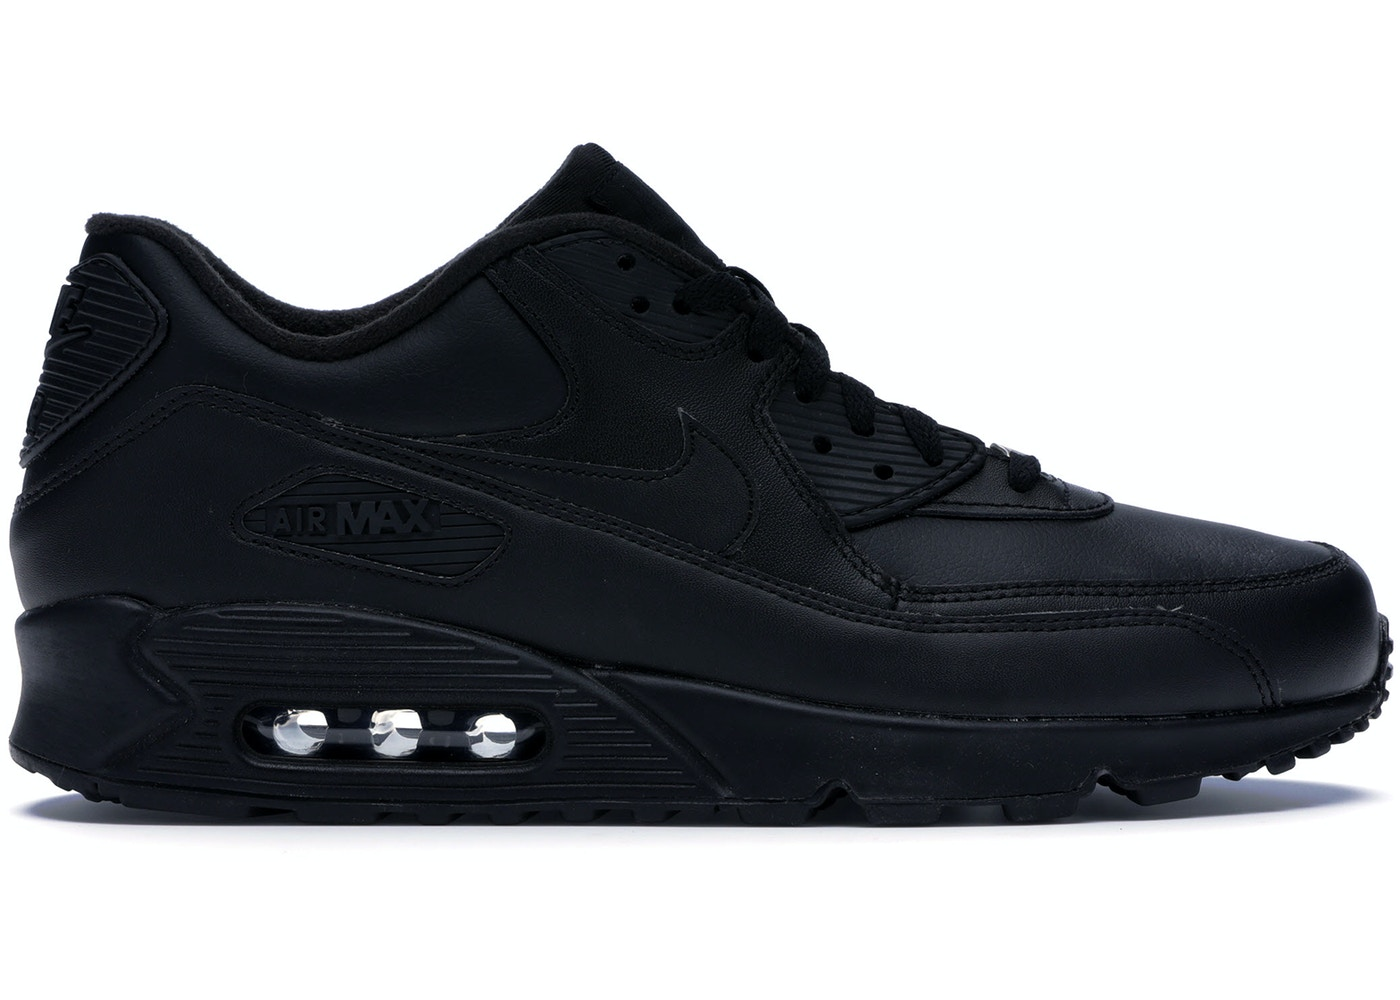 hot sale online c9b8c 595e3 Buy Nike Air Max 90 Shoes & Deadstock Sneakers